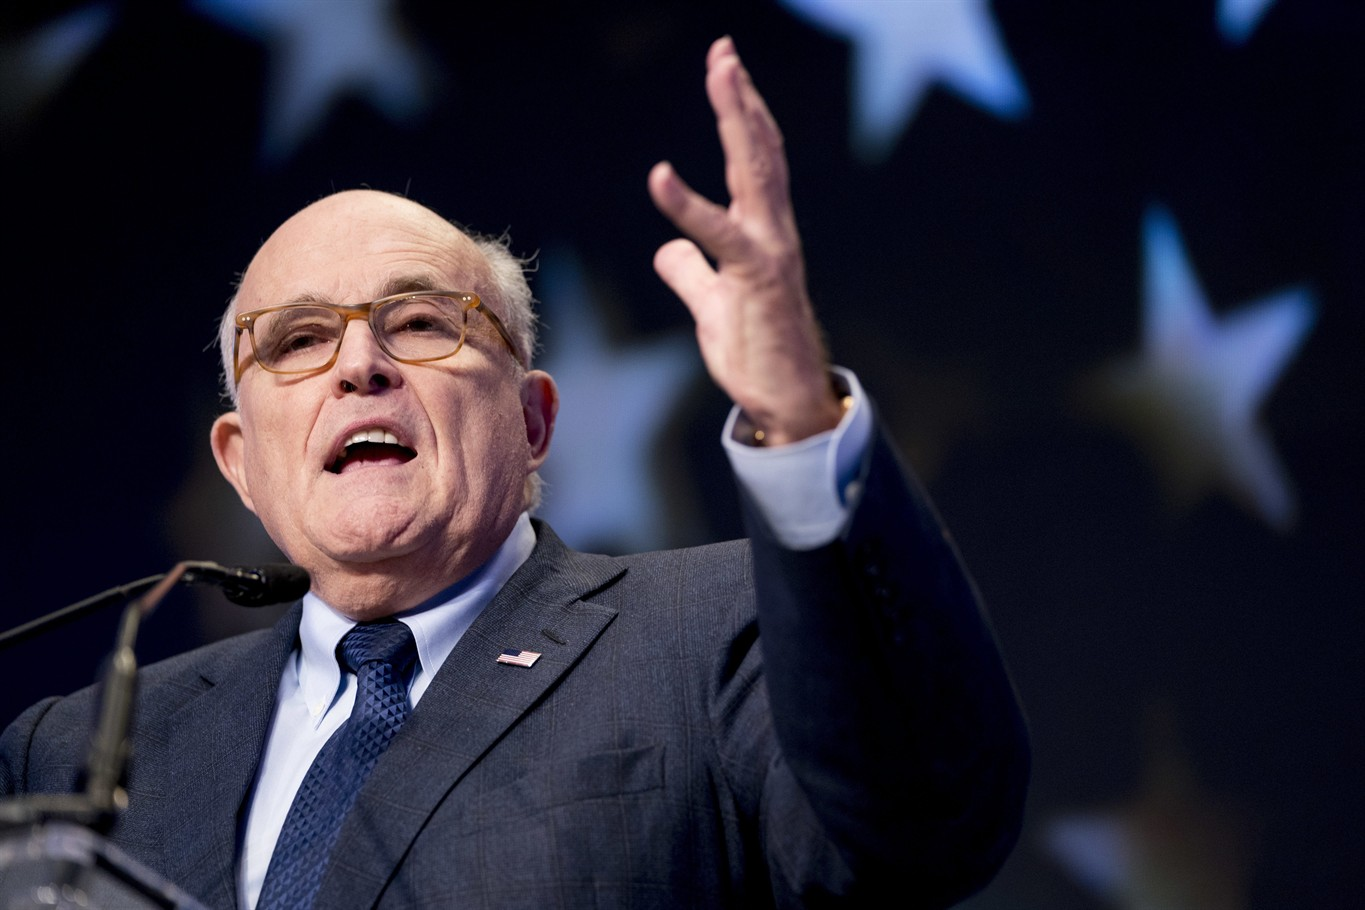 Origin of Mueller Investigation Into Trump Campaign Was 'Illegitimate': Giuliani